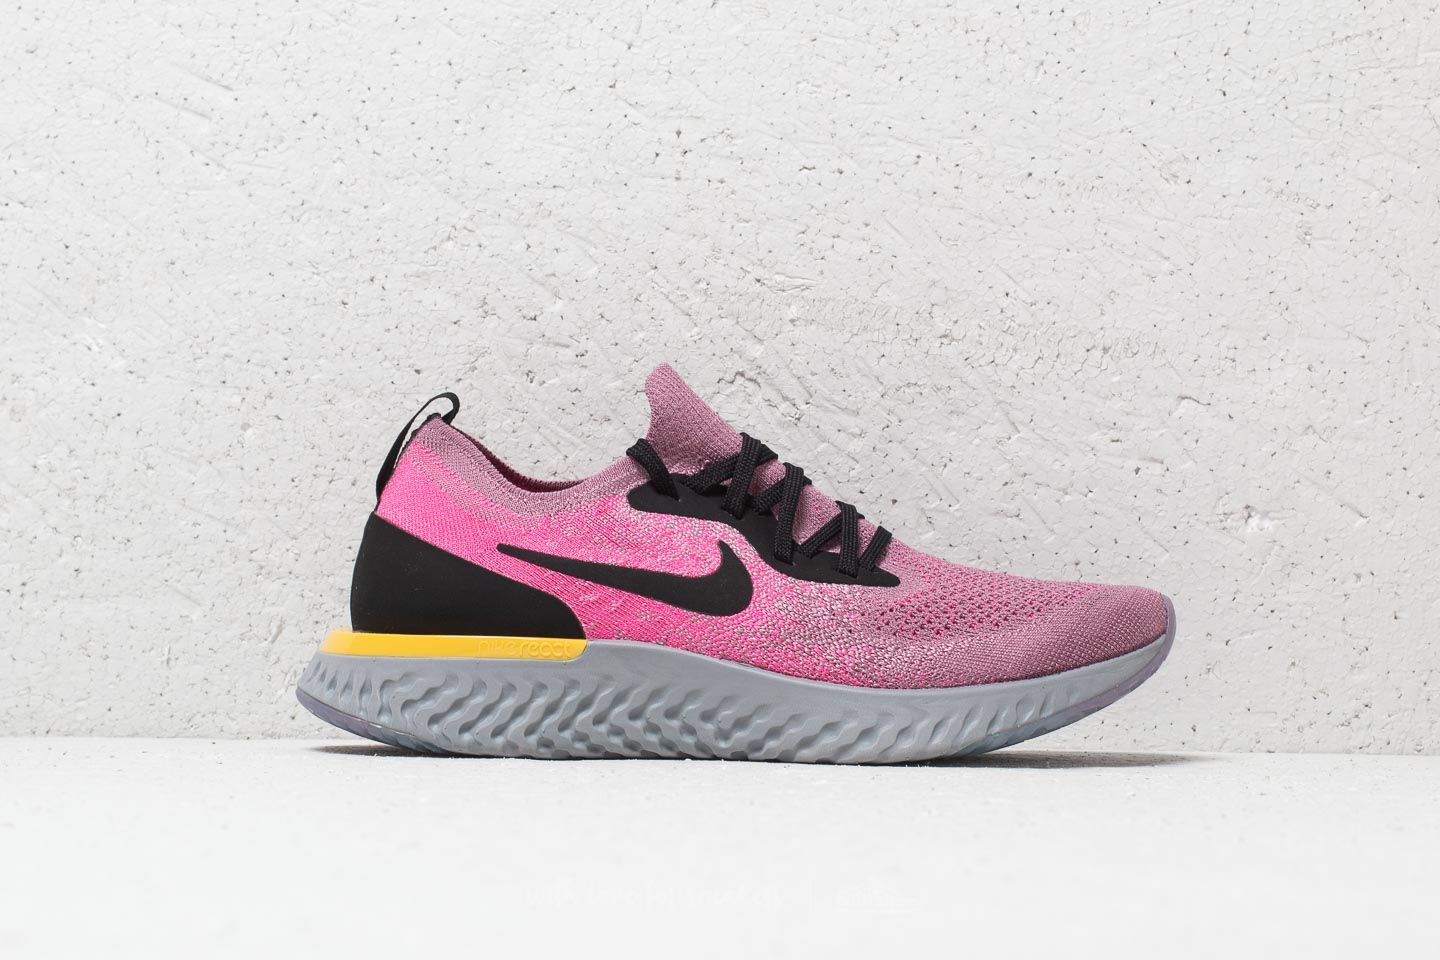 Nike Epic React Flyknit GS Nike Epic React Flyknit (GS) Plum Dust/ Black-Pink Blast | Footshop